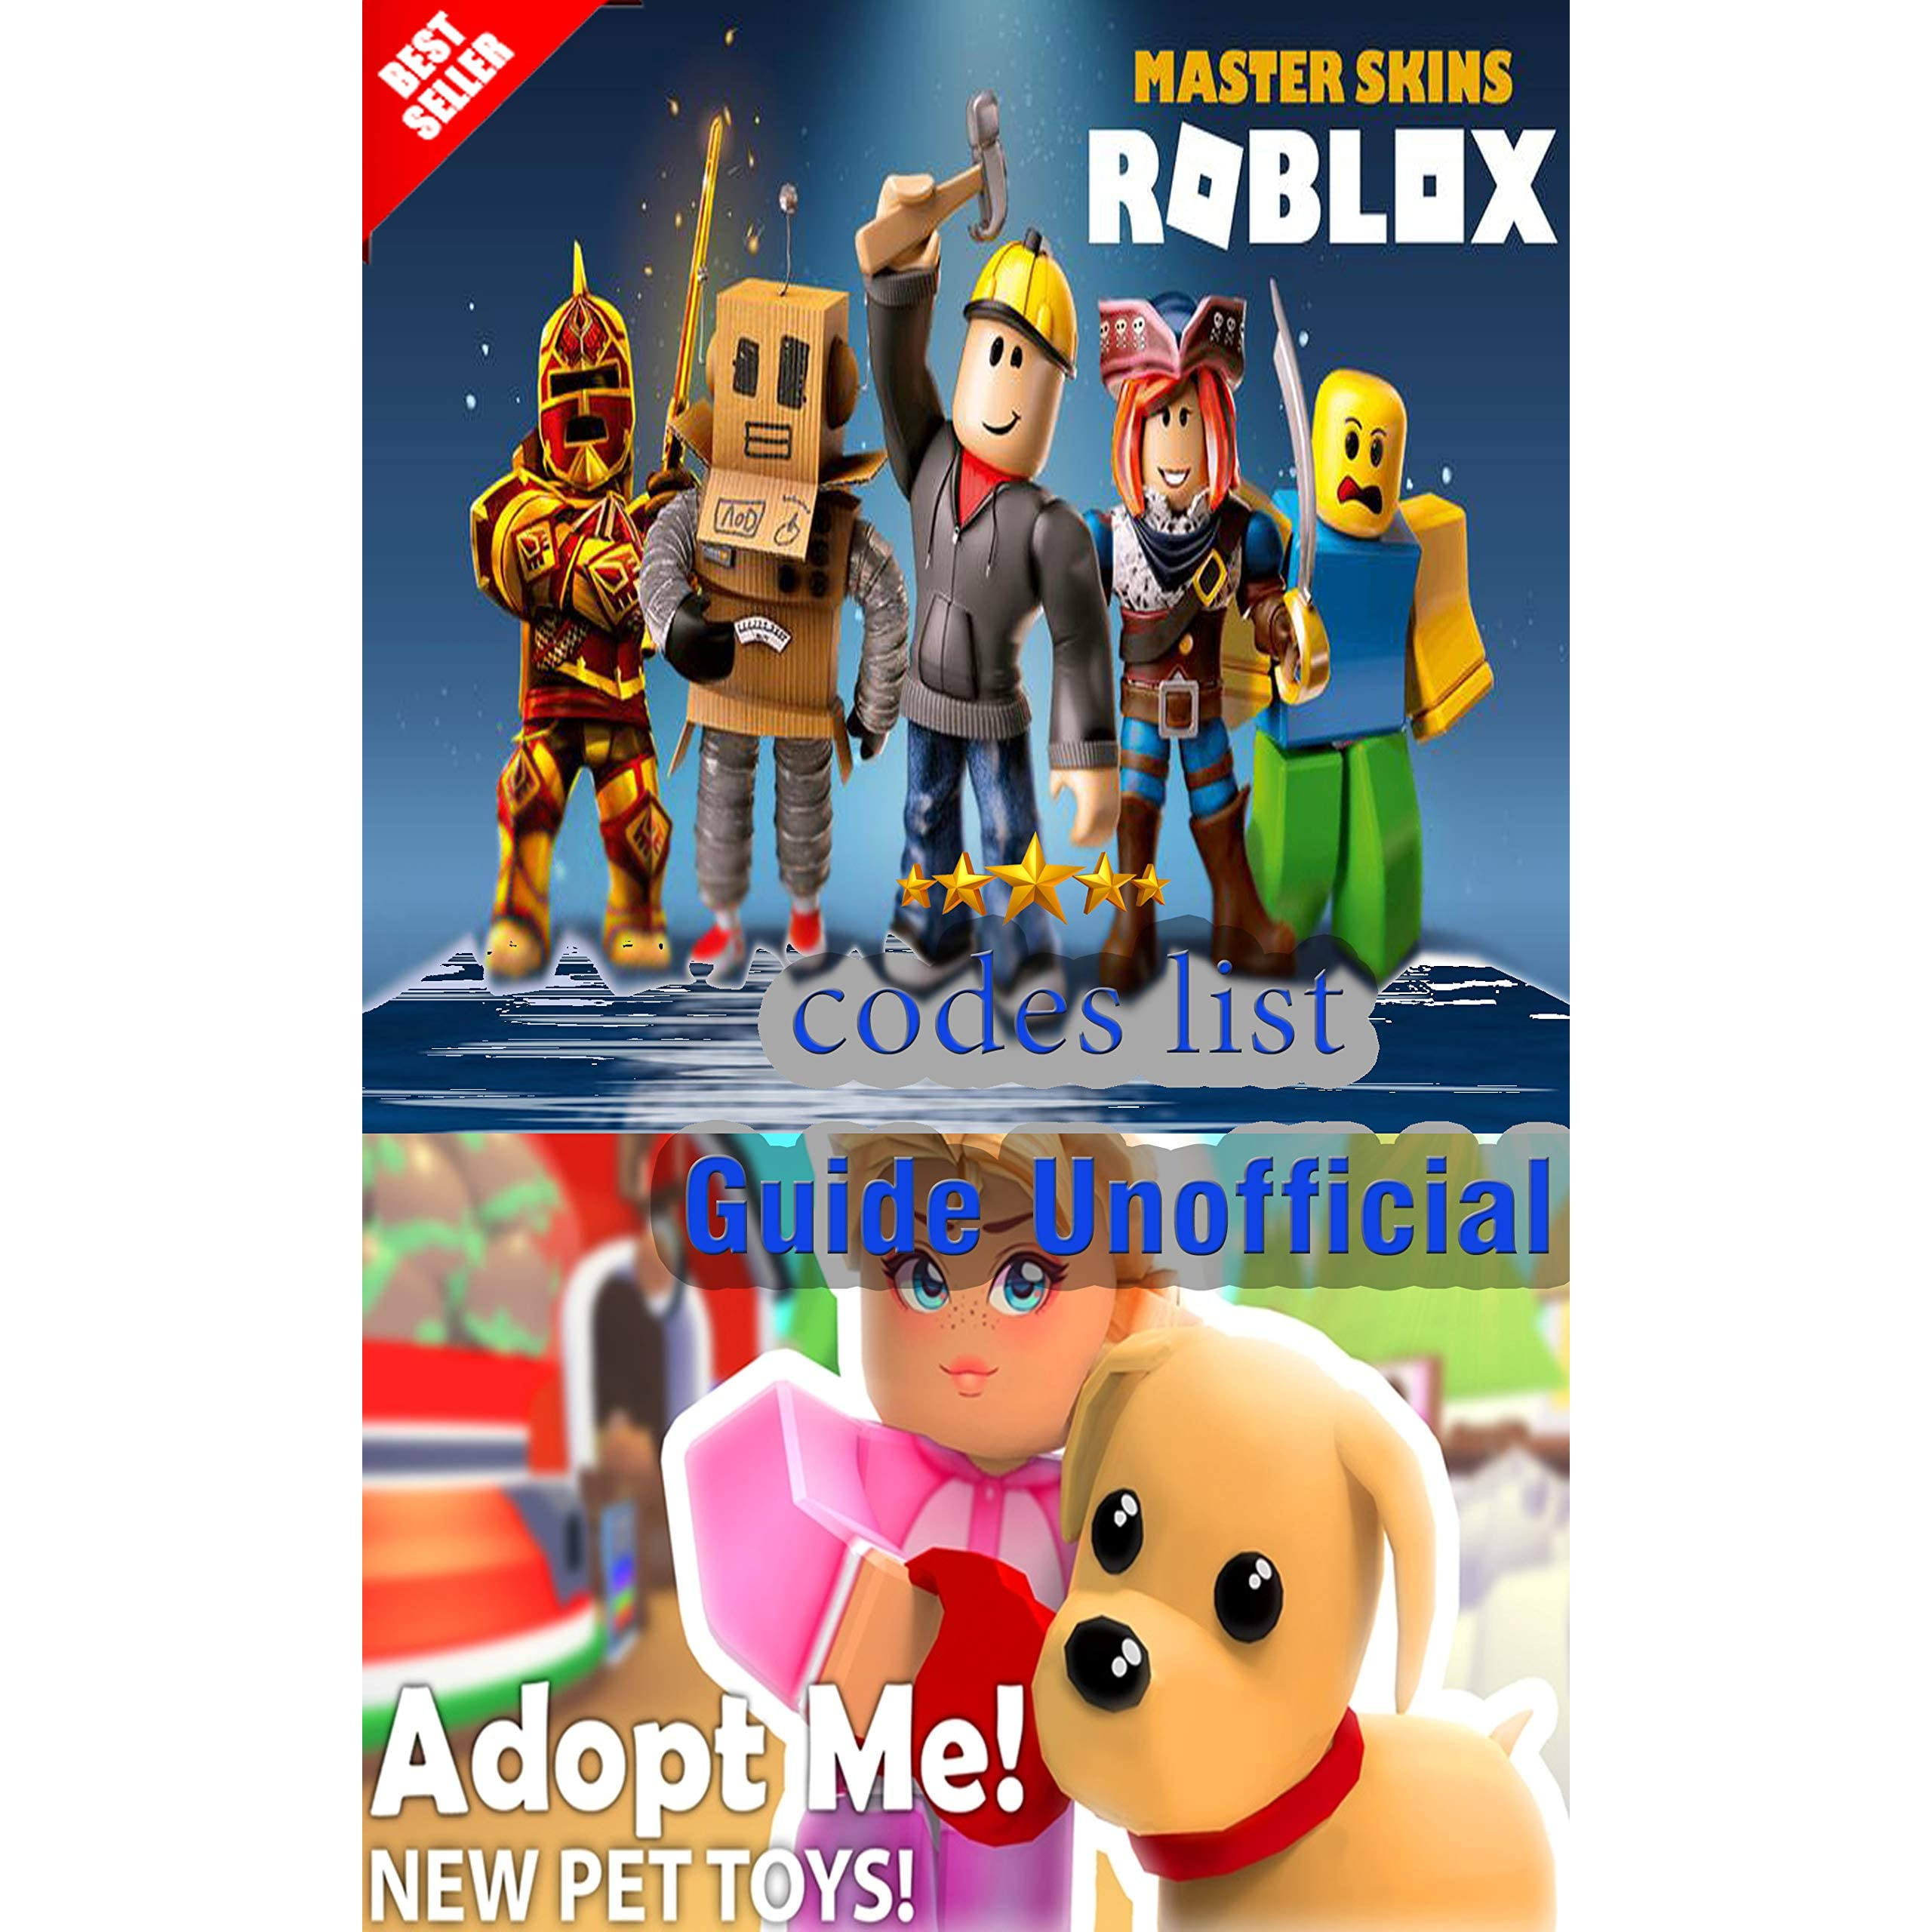 Roblox Adopt Me Adopt Me Bee Monkey Pet Codes List Guide Unofficial By Chico Chan